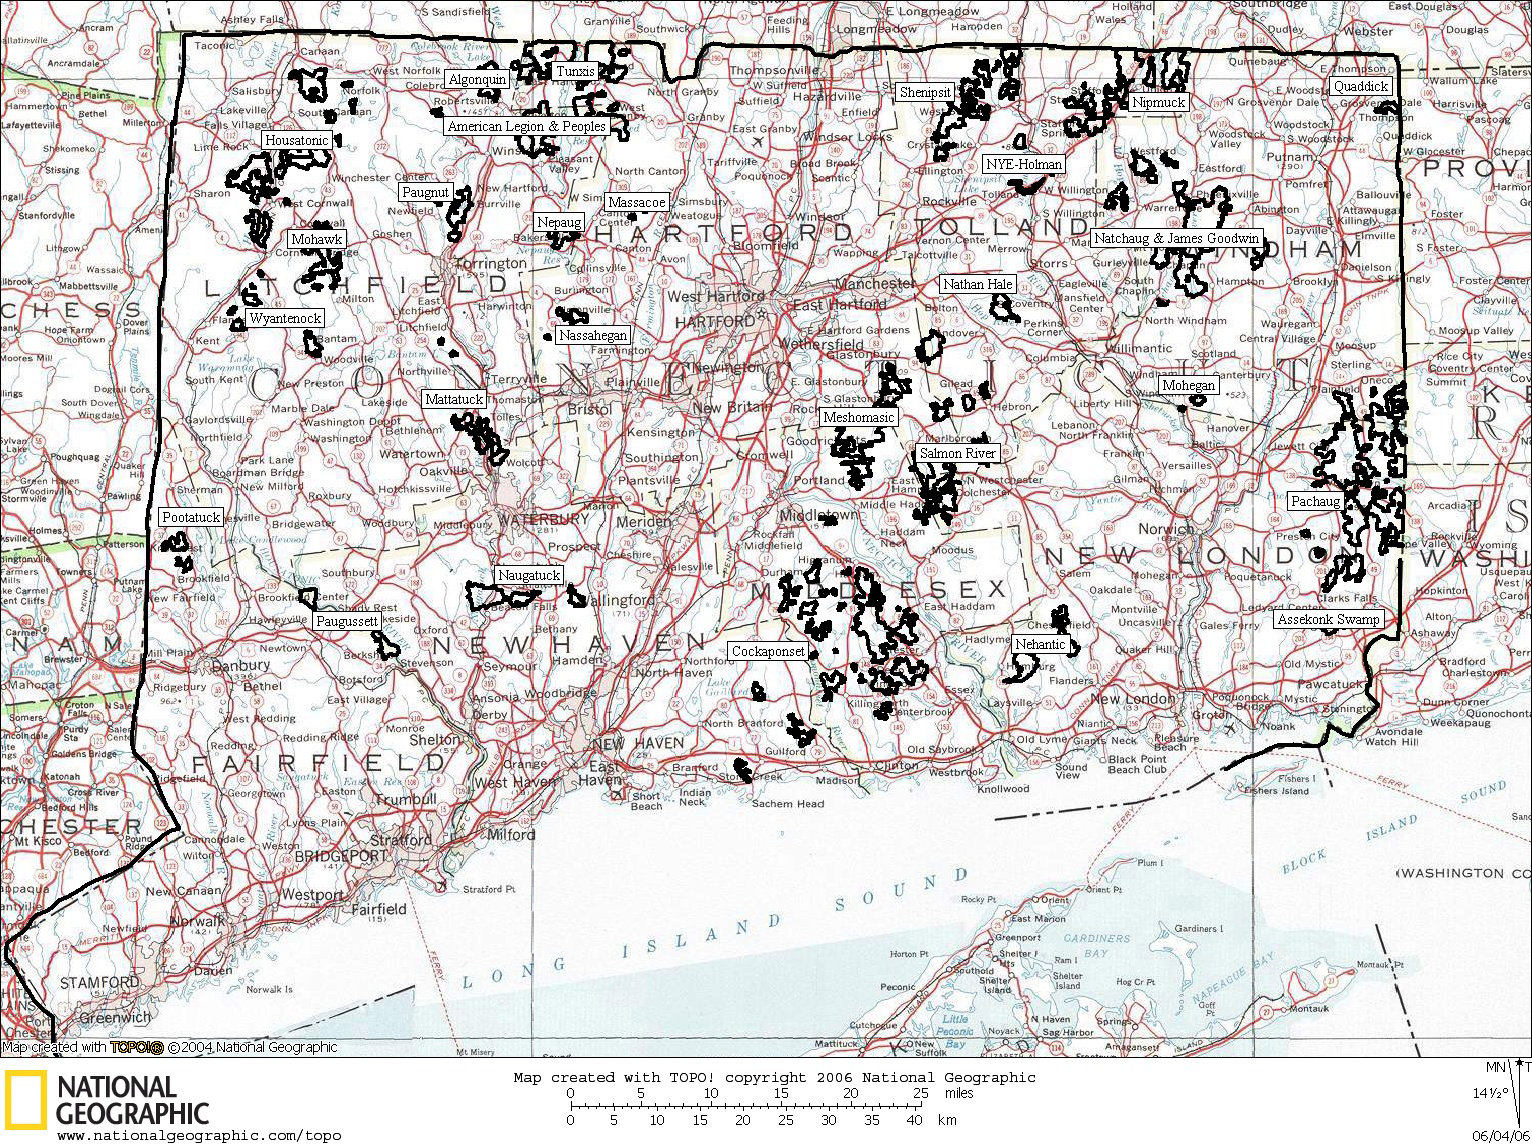 Connecticut State Forests - Connecticut state map